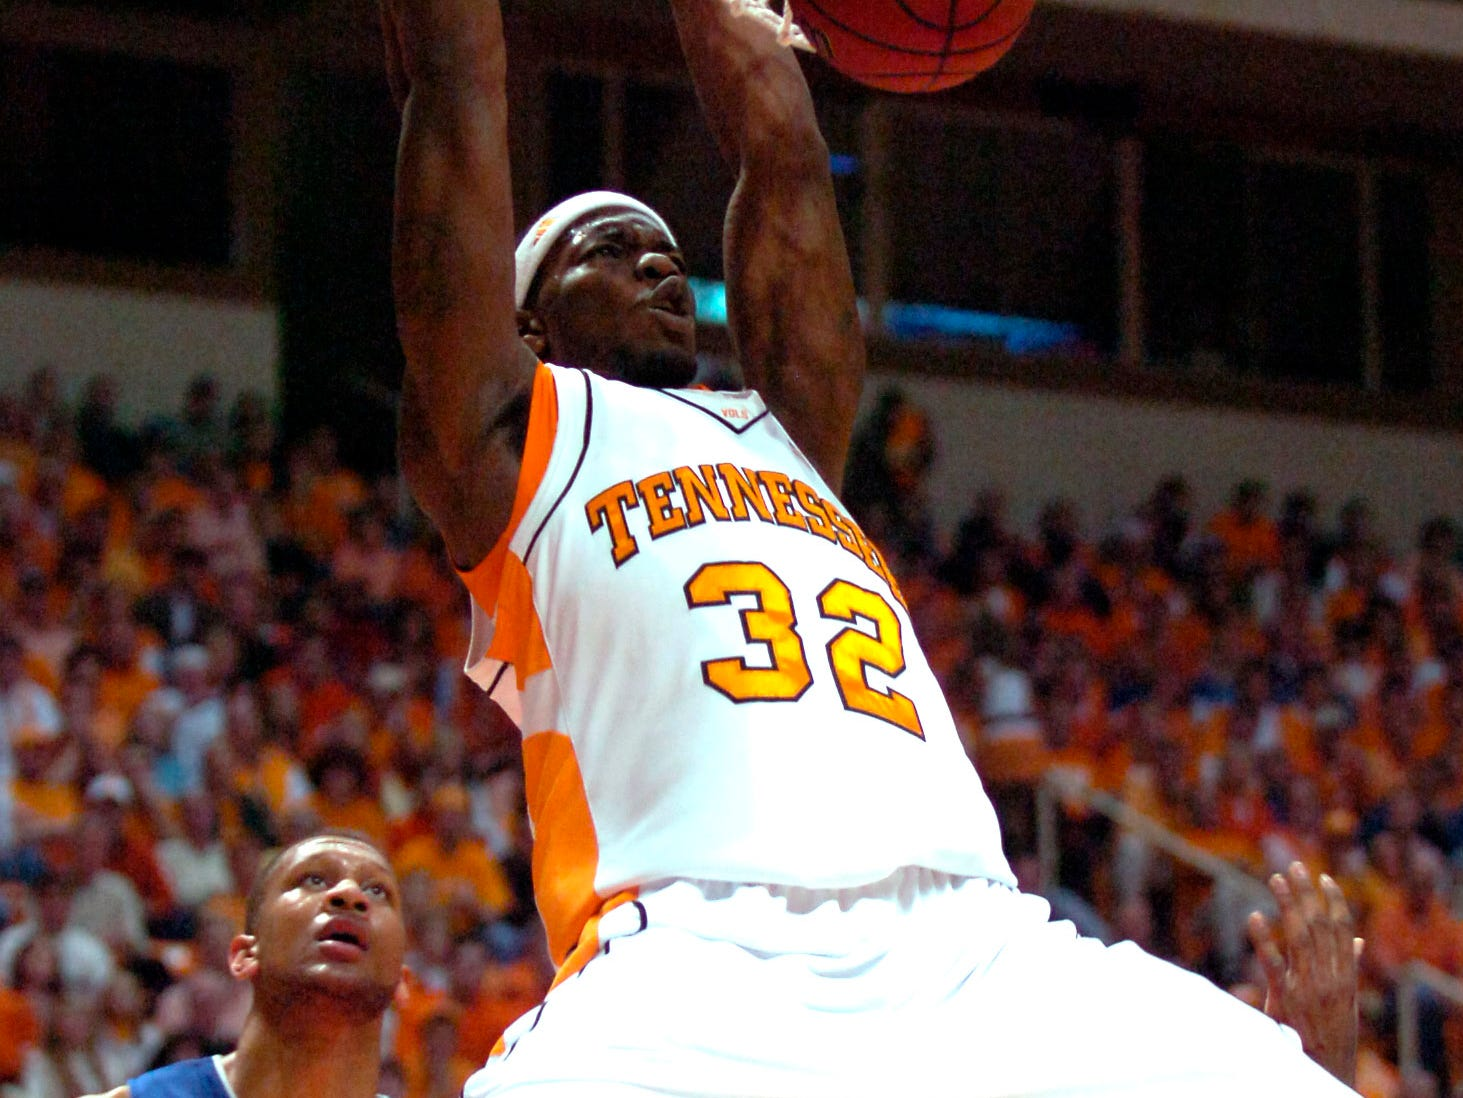 UT's Duke Crews dunks the ball against UK at Thompson Boling Arena in February 2007. UT defeated 20th ranked Kentucky 89-85.